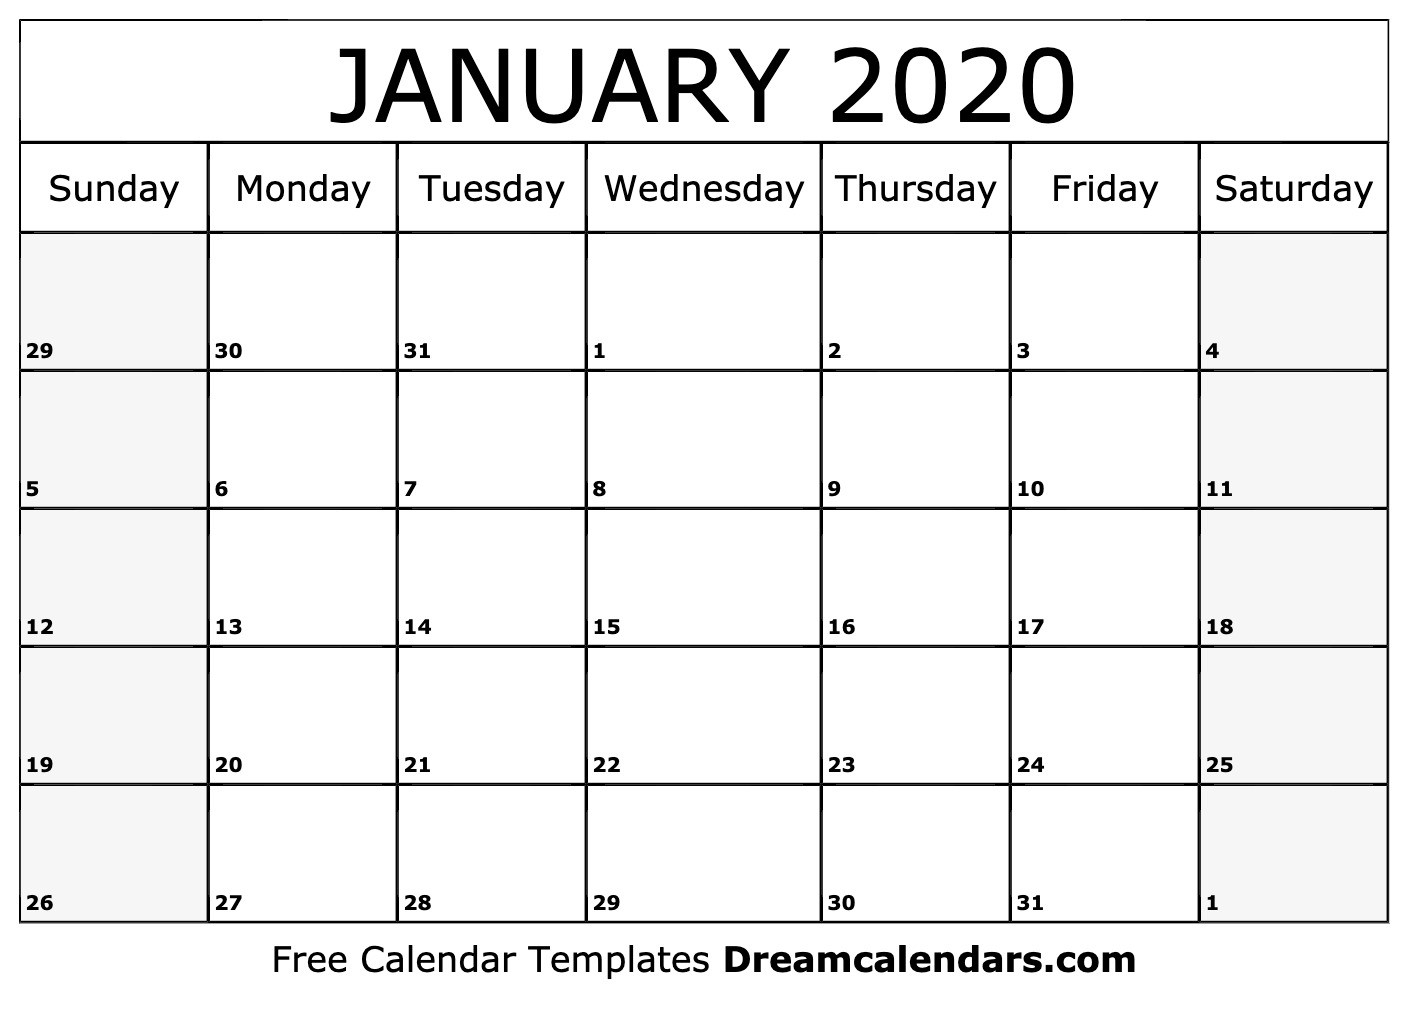 Printable January 2020 Calendar-January 2020 Calendar Download